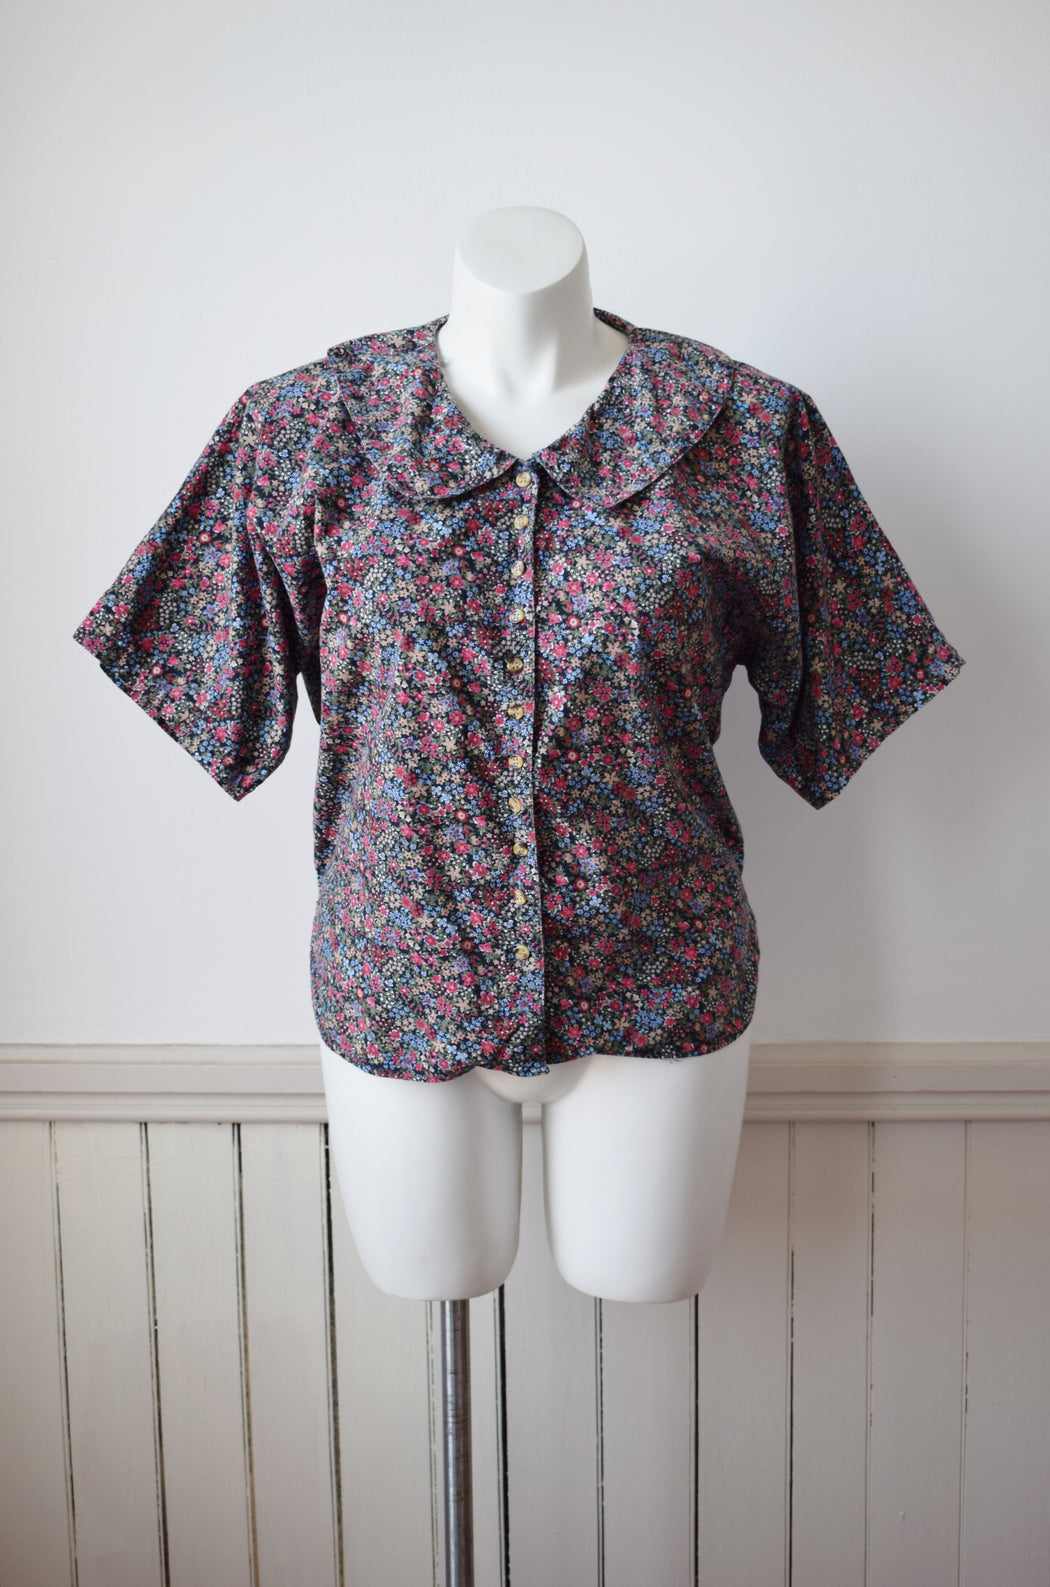 Micro Floral Print Cotton Top | L/XL